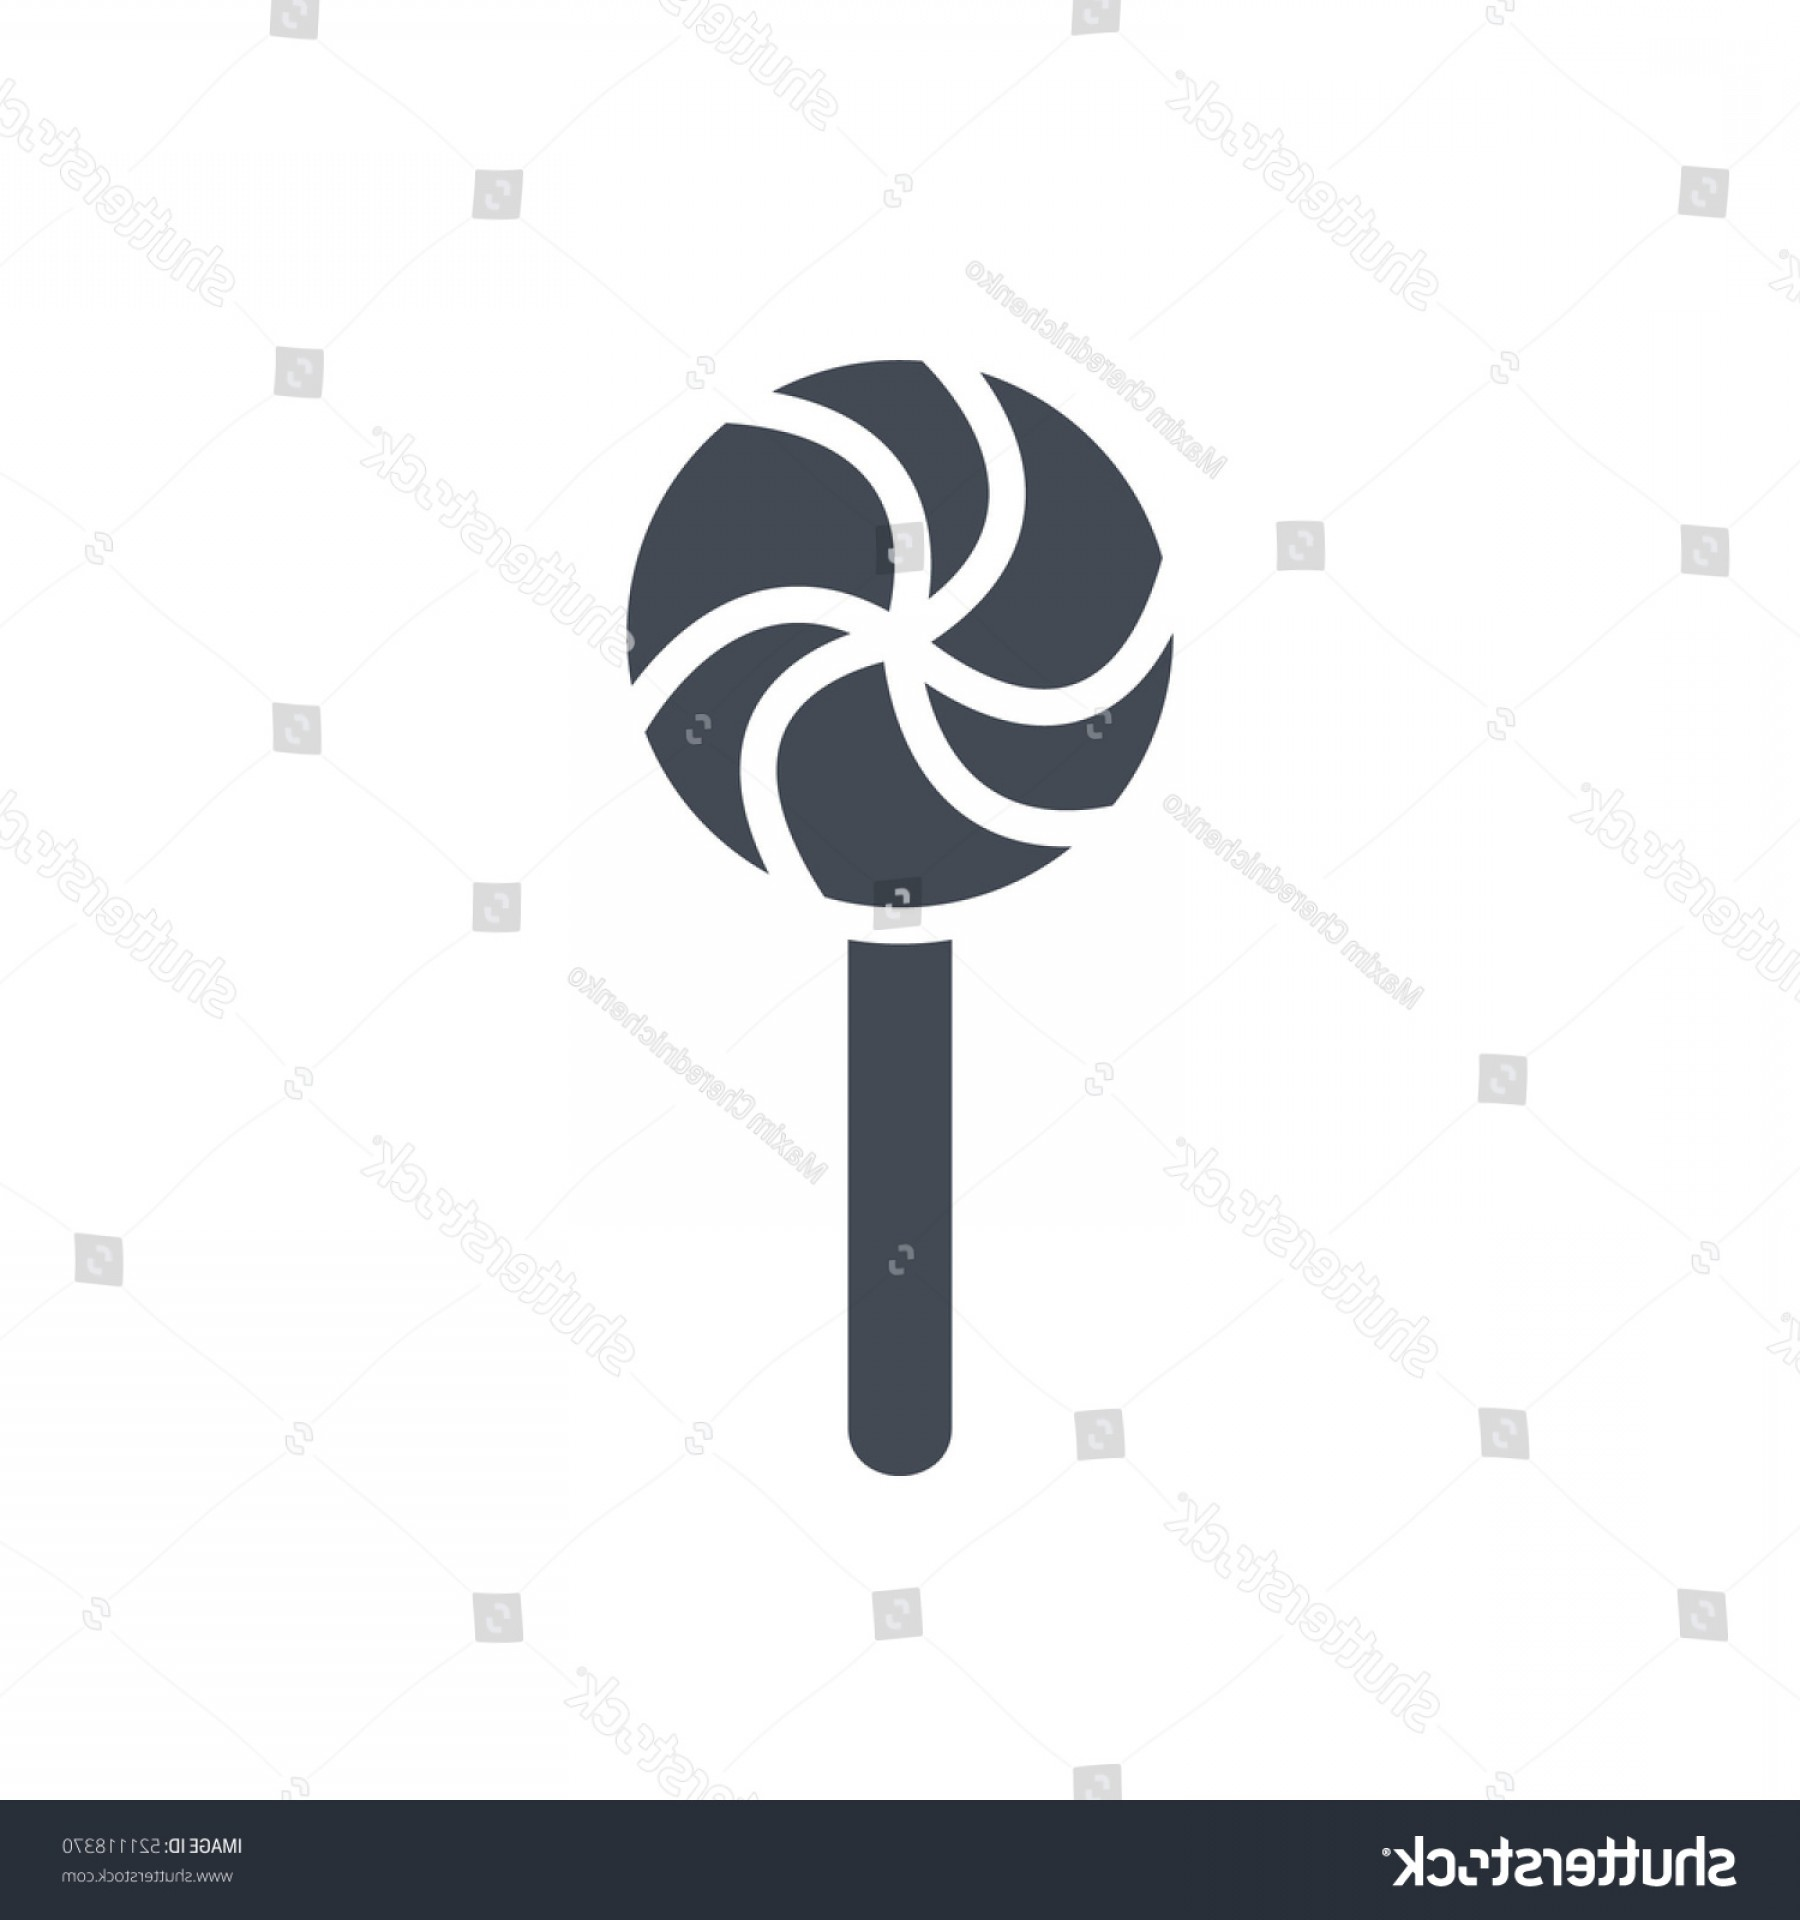 Lollipop Vector Silhouette: Christmas Icon Solid Lollipop Silhouette